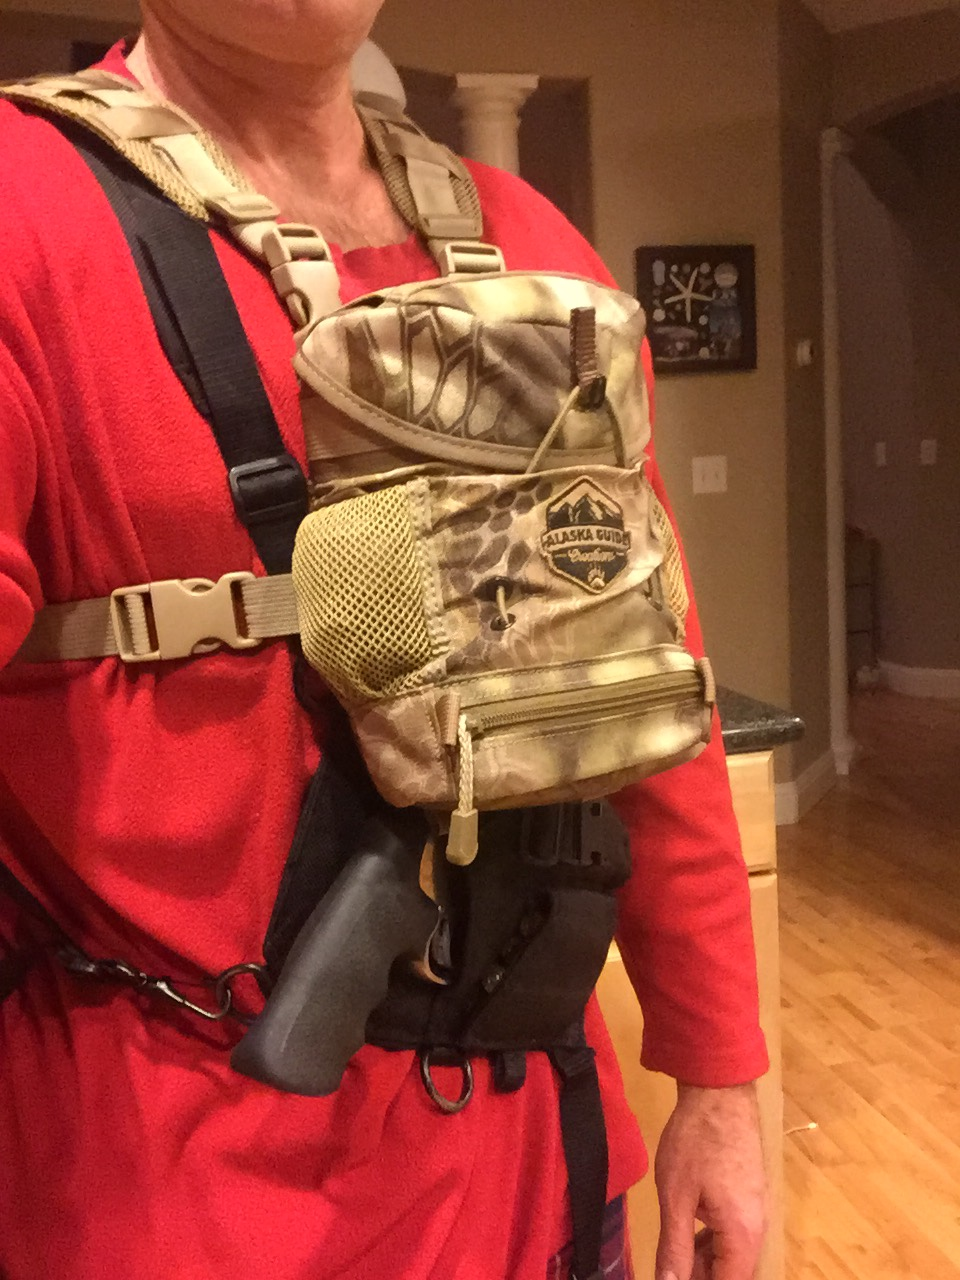 Bino Harness + Chest Holster | Page 2 | Rokslide Forum